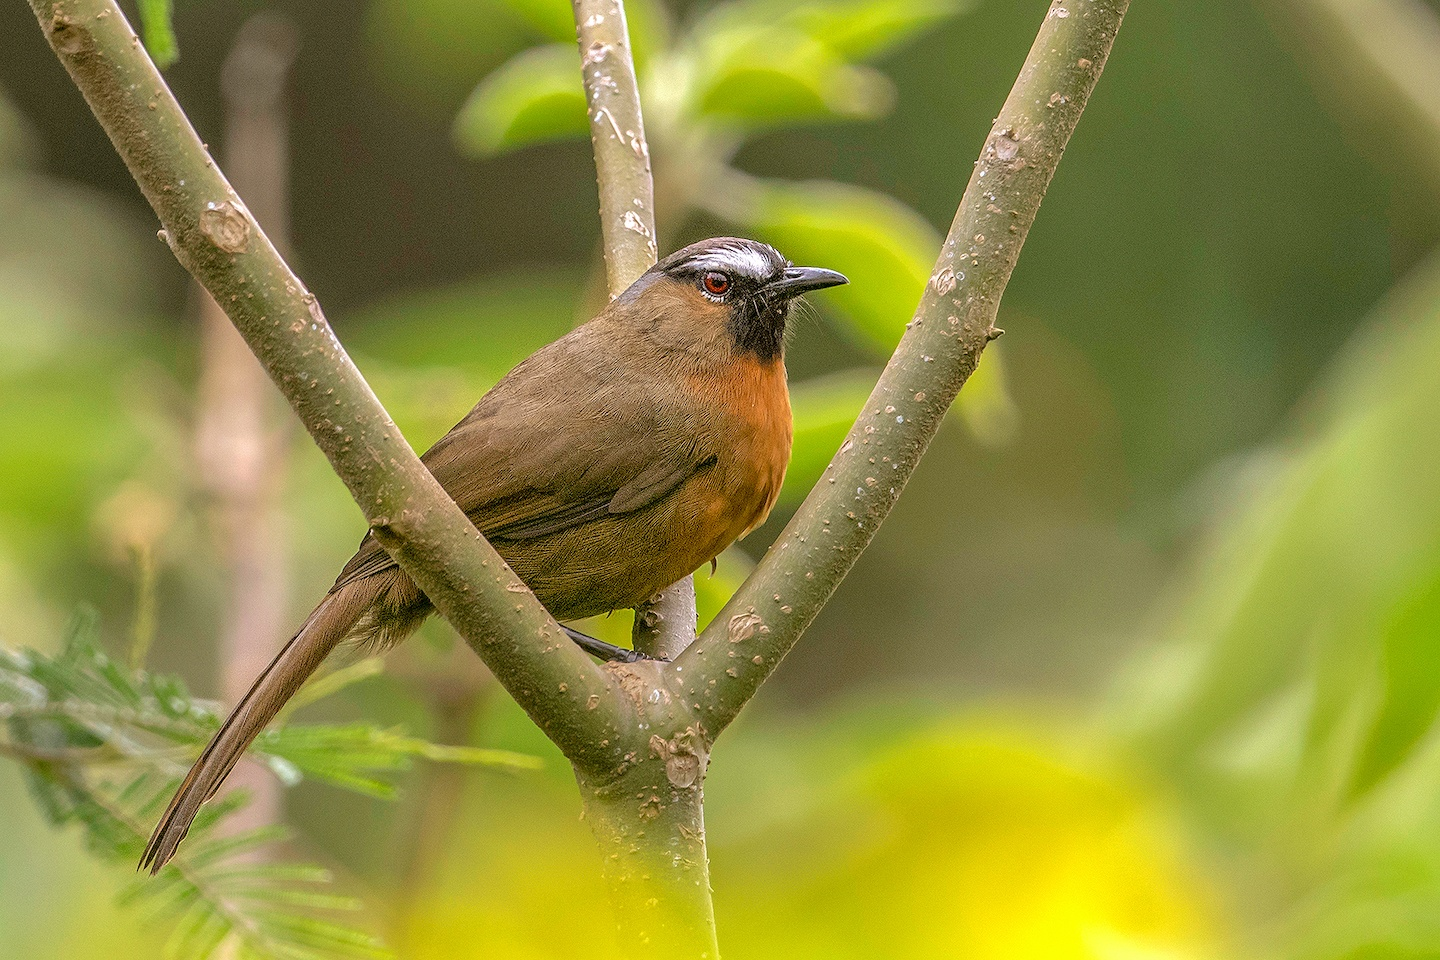 The Nilgiri laughingthrush is seen in stunted montane forests in pairs or flocks, reciting their melodious song and often creating a racket, hence the group is called laughingthrush. Because of its loud song, it is more often heard than spotted.  Photo: Aseem Kothiala  (Top) The Nilgiri laughingthrush made it to an Indian postal stamp circa 2006, as a part of Indian Post's endemic bird series. Birds were first introduced on Indian stamps to create awareness about the diversity of avifauna in India.  Photo: rook76/Shutterstock  The Nilgiri laughingthrush is easily recognised by its black chin and a striking, unmistakable white eyebrow that makes it look like its wearing a stern, serious expression. Cover photo: Antony Grossy CC BY-SA 4.0